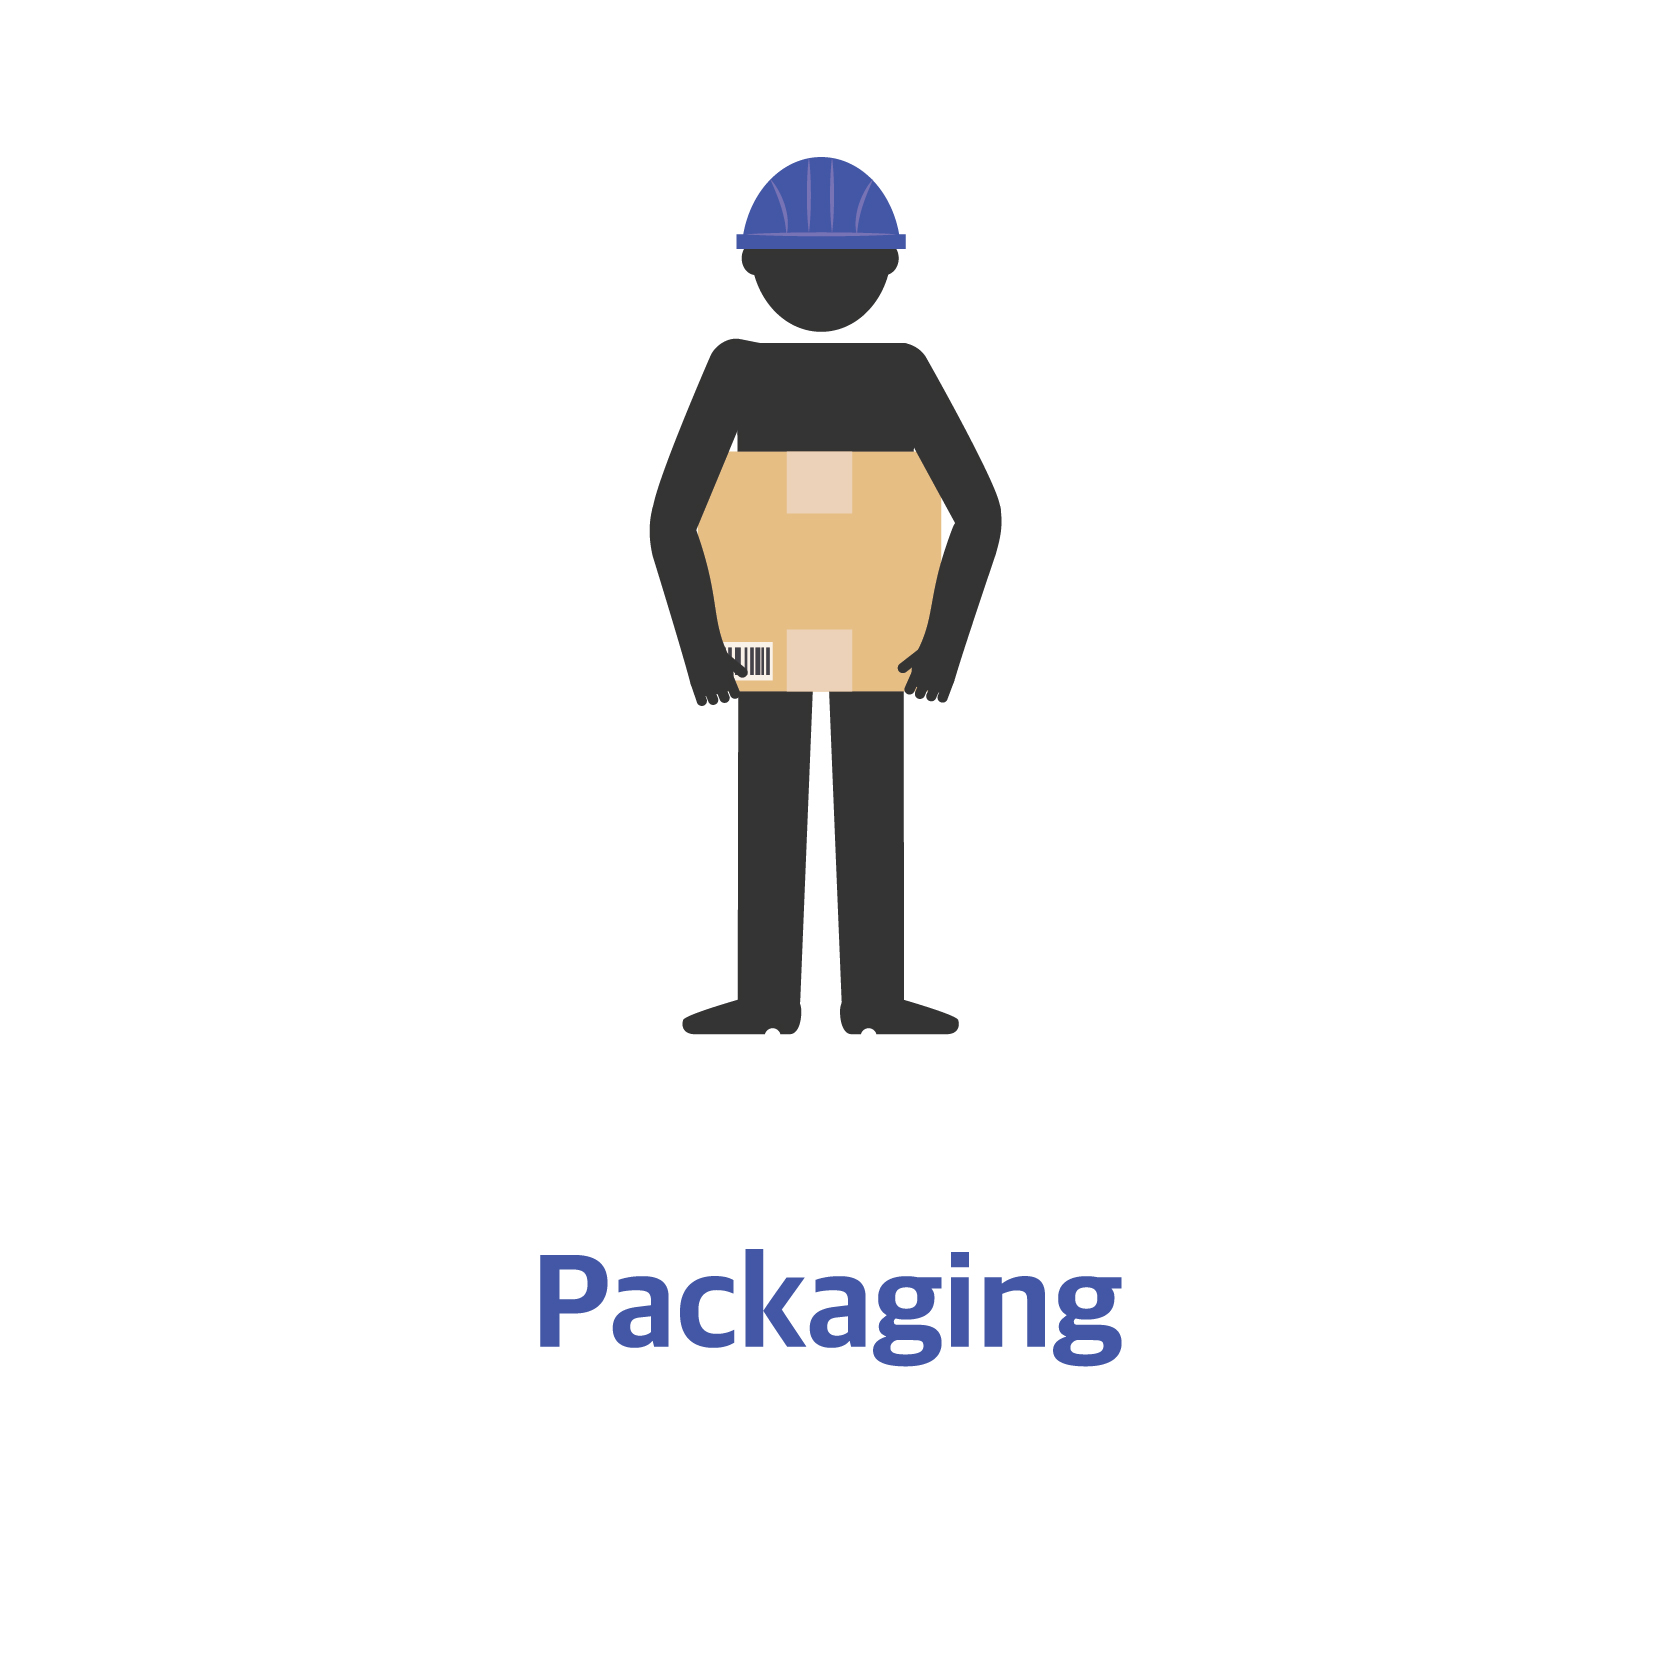 PACKAGING-01